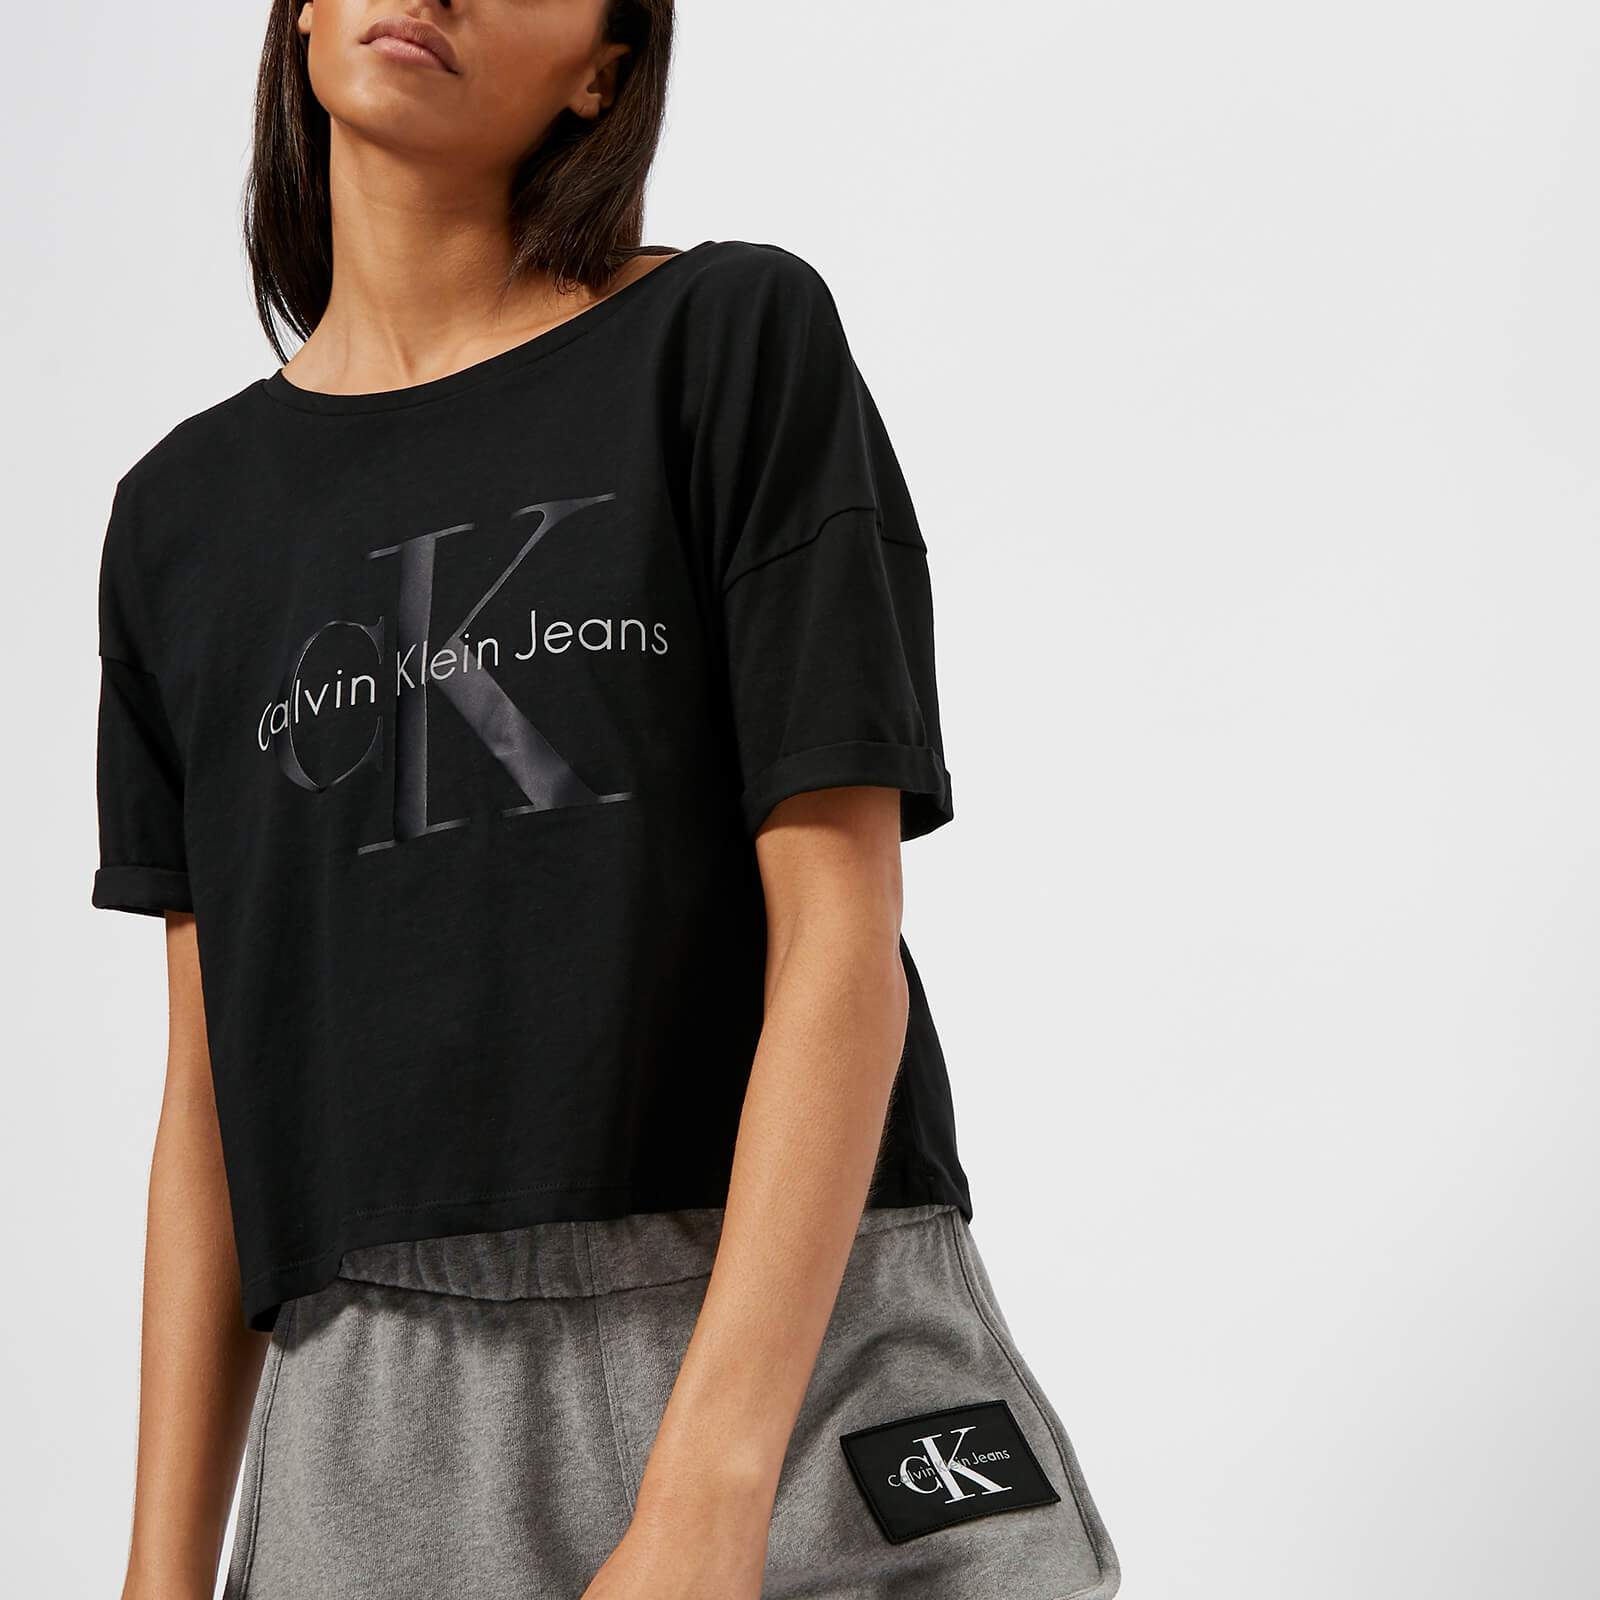 c9306452c76 Calvin Klein Women's CK Logo Crop Top - Black Womens Clothing | TheHut.com